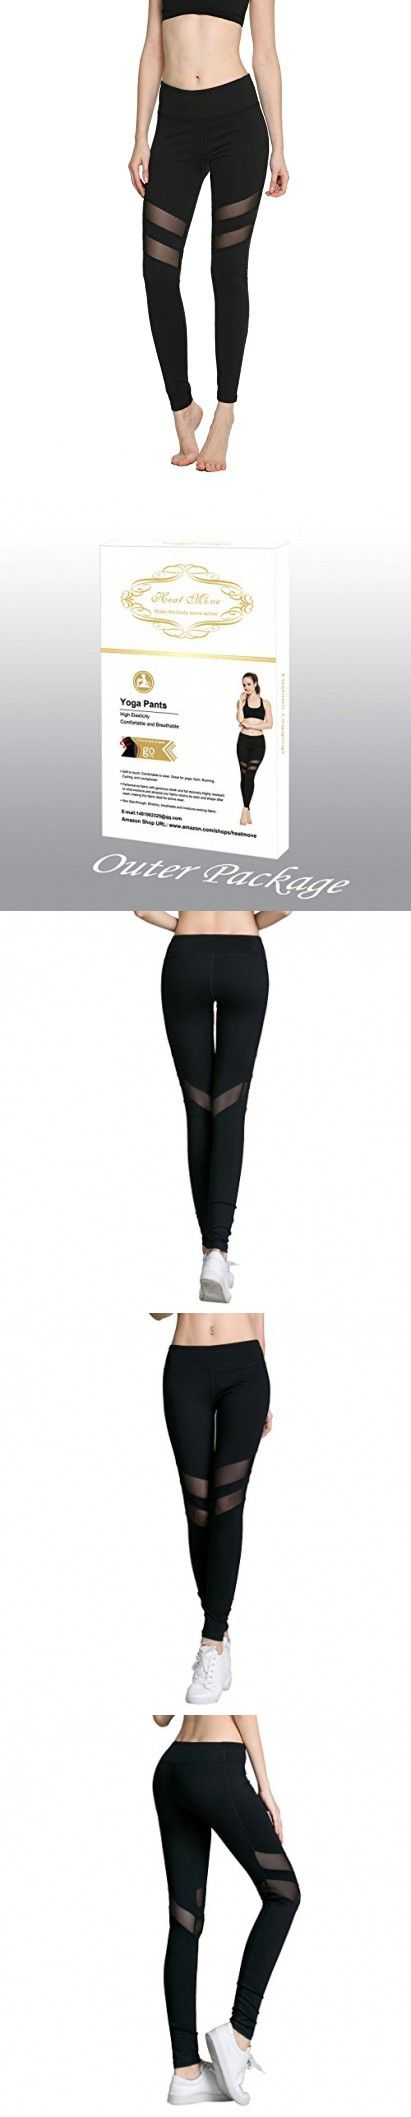 Women's Girl Mesh Stretchy Tights exercise Fitness Non see through Leggings Workout Gym Running Loungewear Yoga Pants (Black, X-Small)